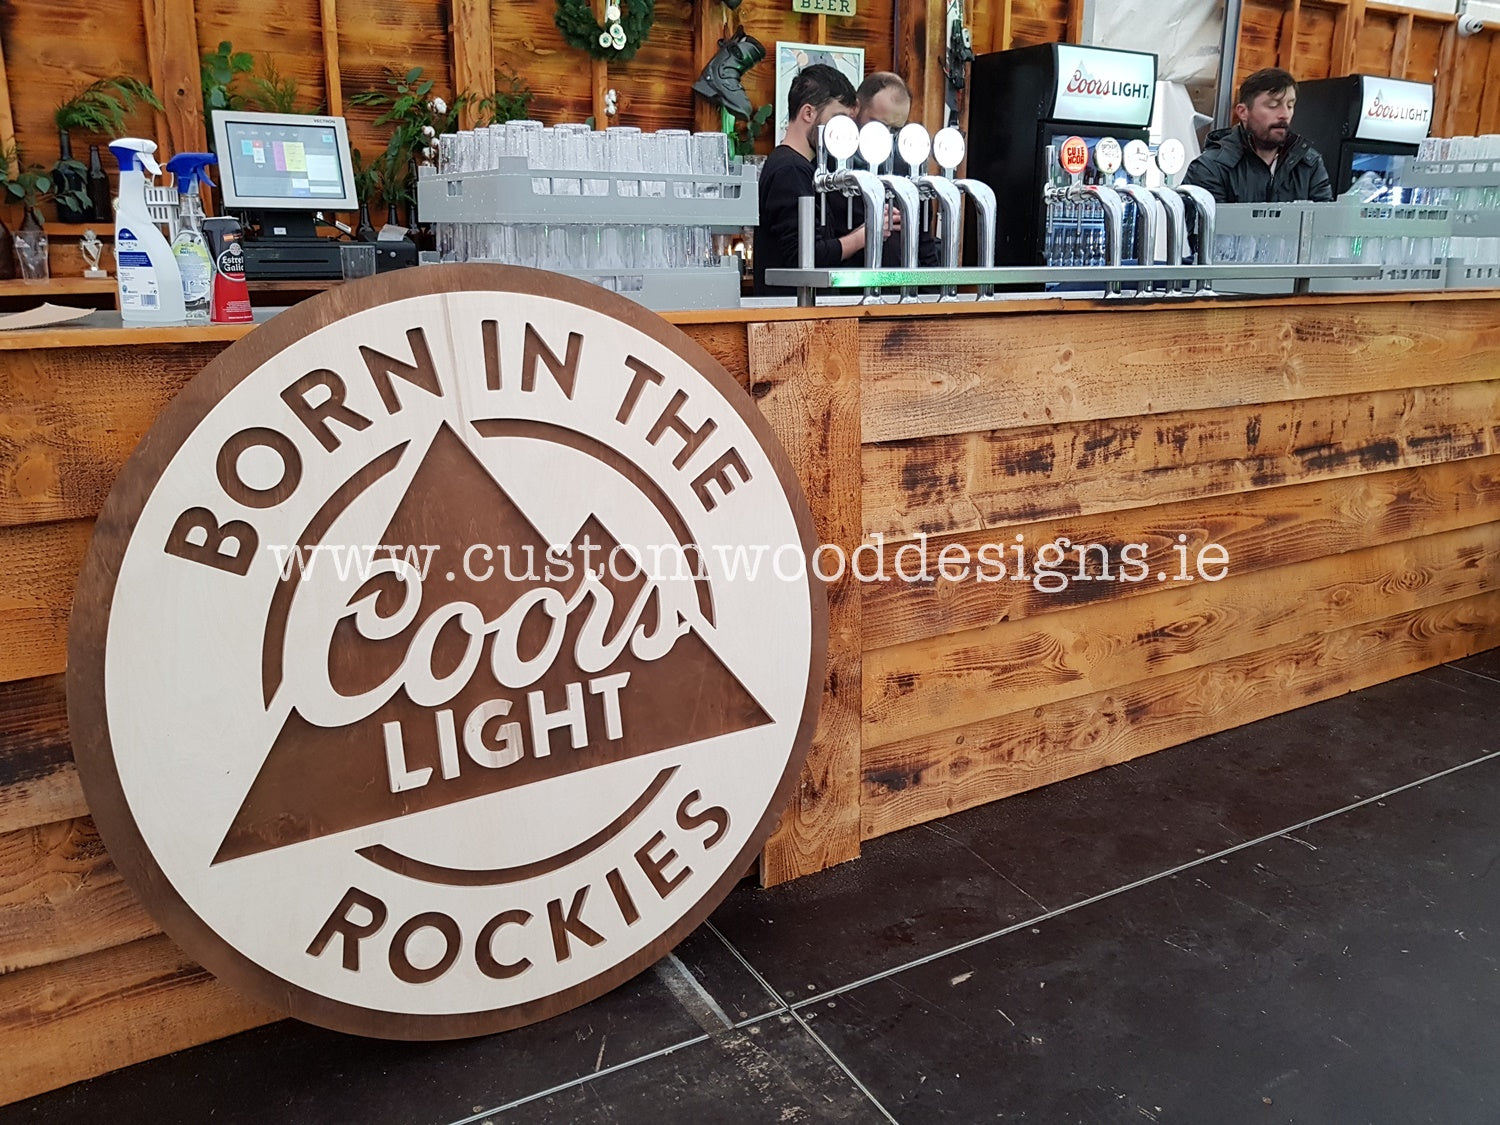 Cors light logo custom wood designs wooden signgs promotional brand activation company timber engraved cnc laser cut ireland irish business gary byrne custom wood  (4)